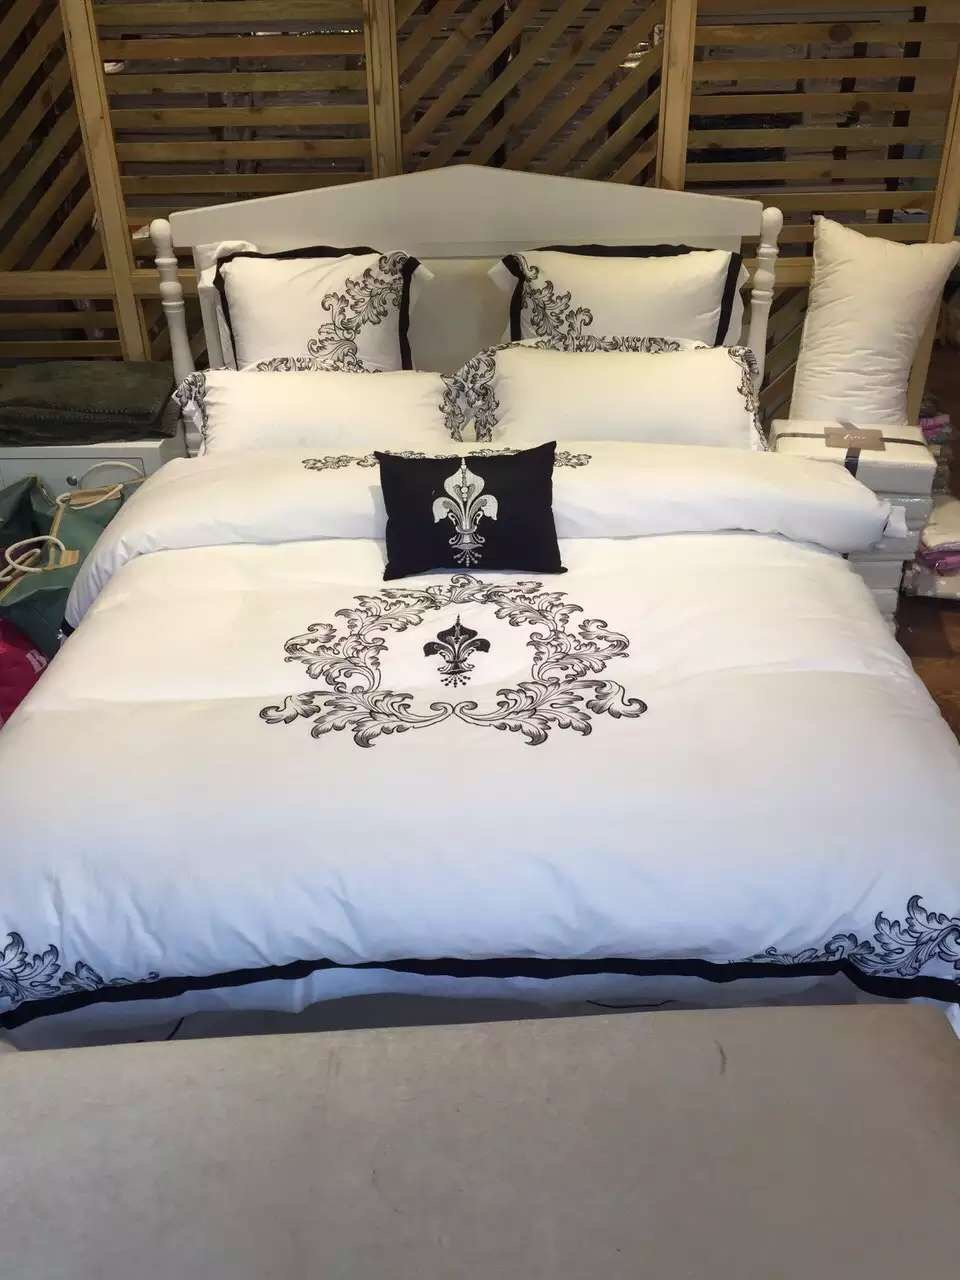 7pcs 100% Cotton 60s Luxury White Hotel Bedding Set With Black Embroidery  Duvet Cover Pillowcase Decorative Pillow Set In Bedding Sets From Home U0026  Garden On ...